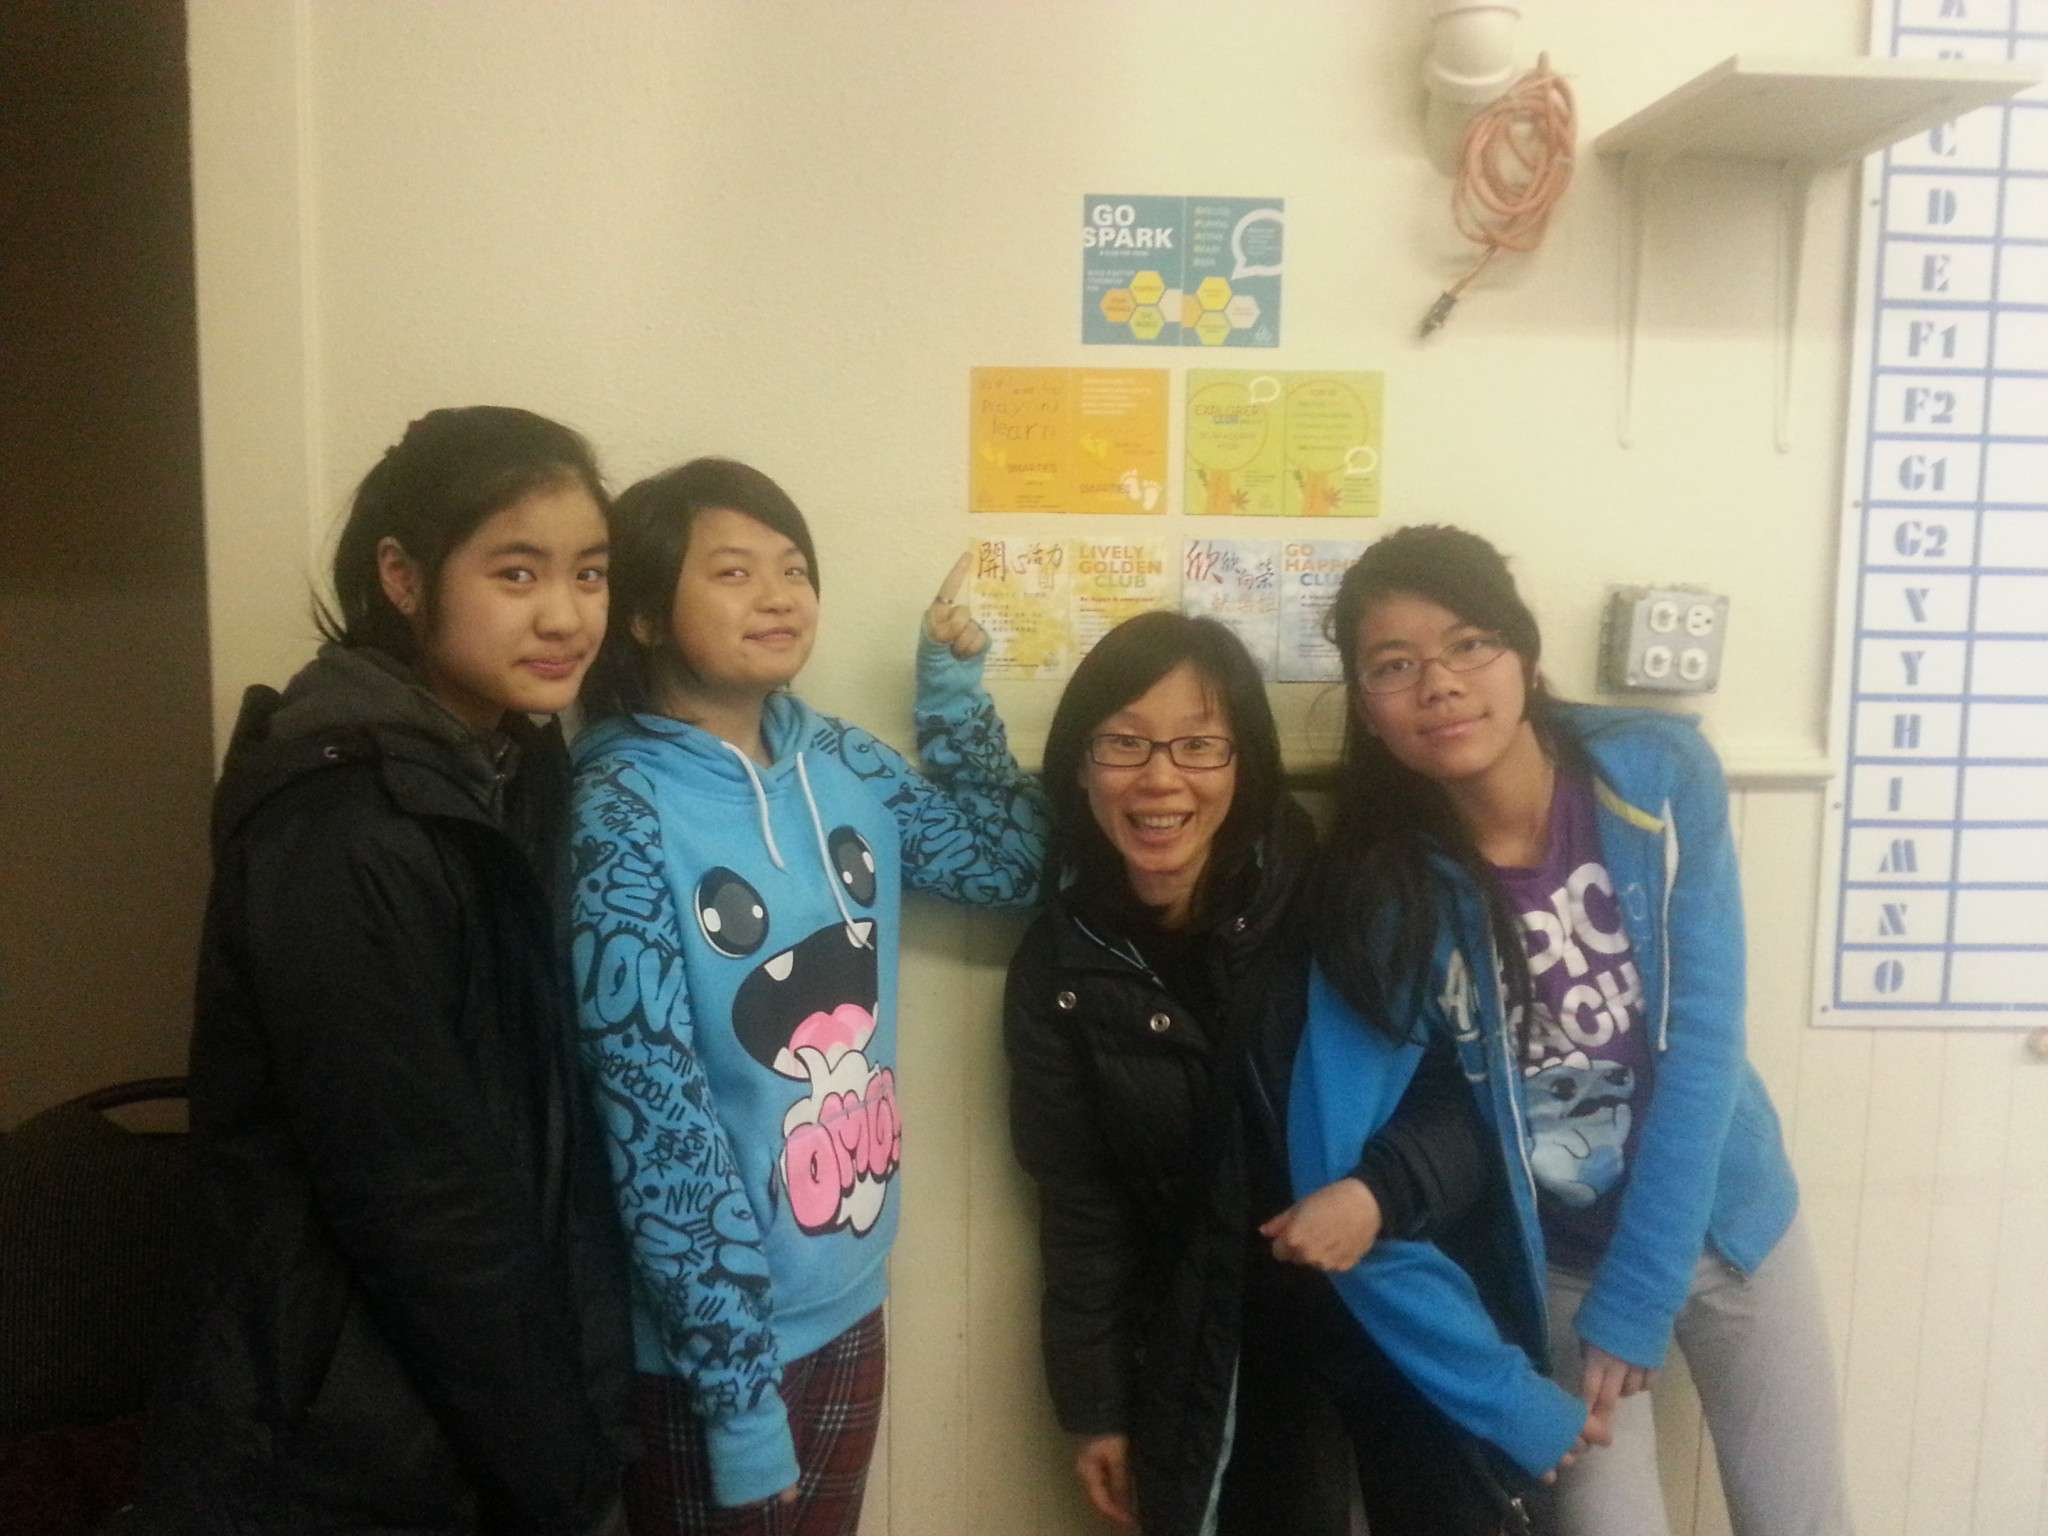 I rather pursue the Lord during Spring Break – Alexis Yung, Grade 9